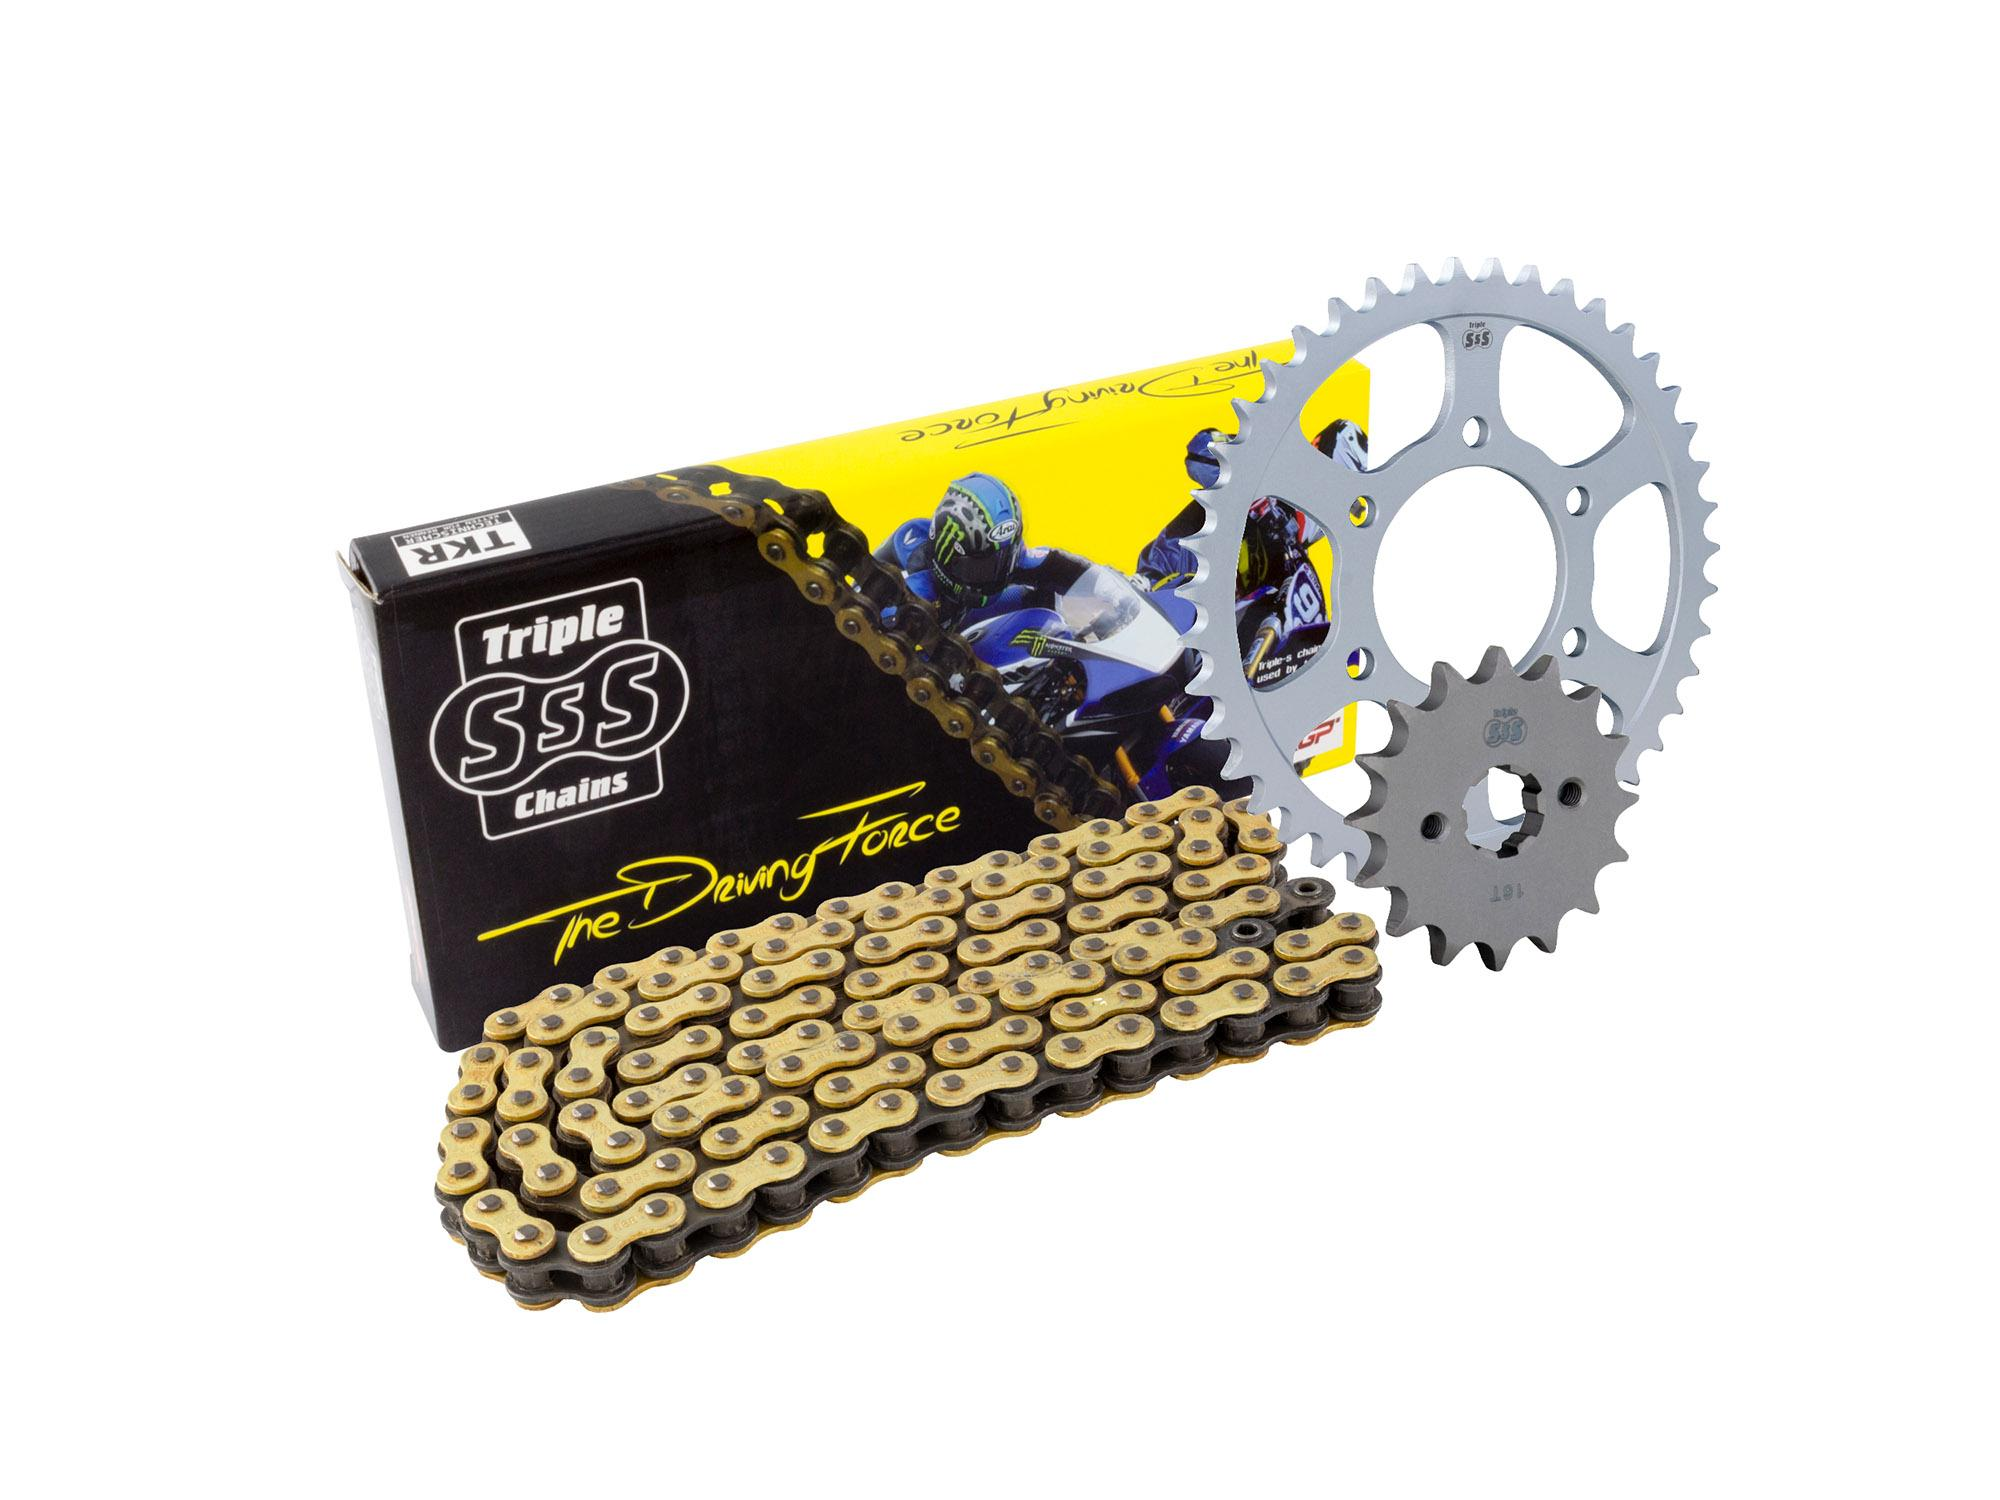 Honda VT750 C / CD / C2 / CD2 Shadow / Deluxe 98-07 Chain & Sprocket Kit: 17T Front, 38T Rear, HD O-Ring Gold Chain 525H 112Link